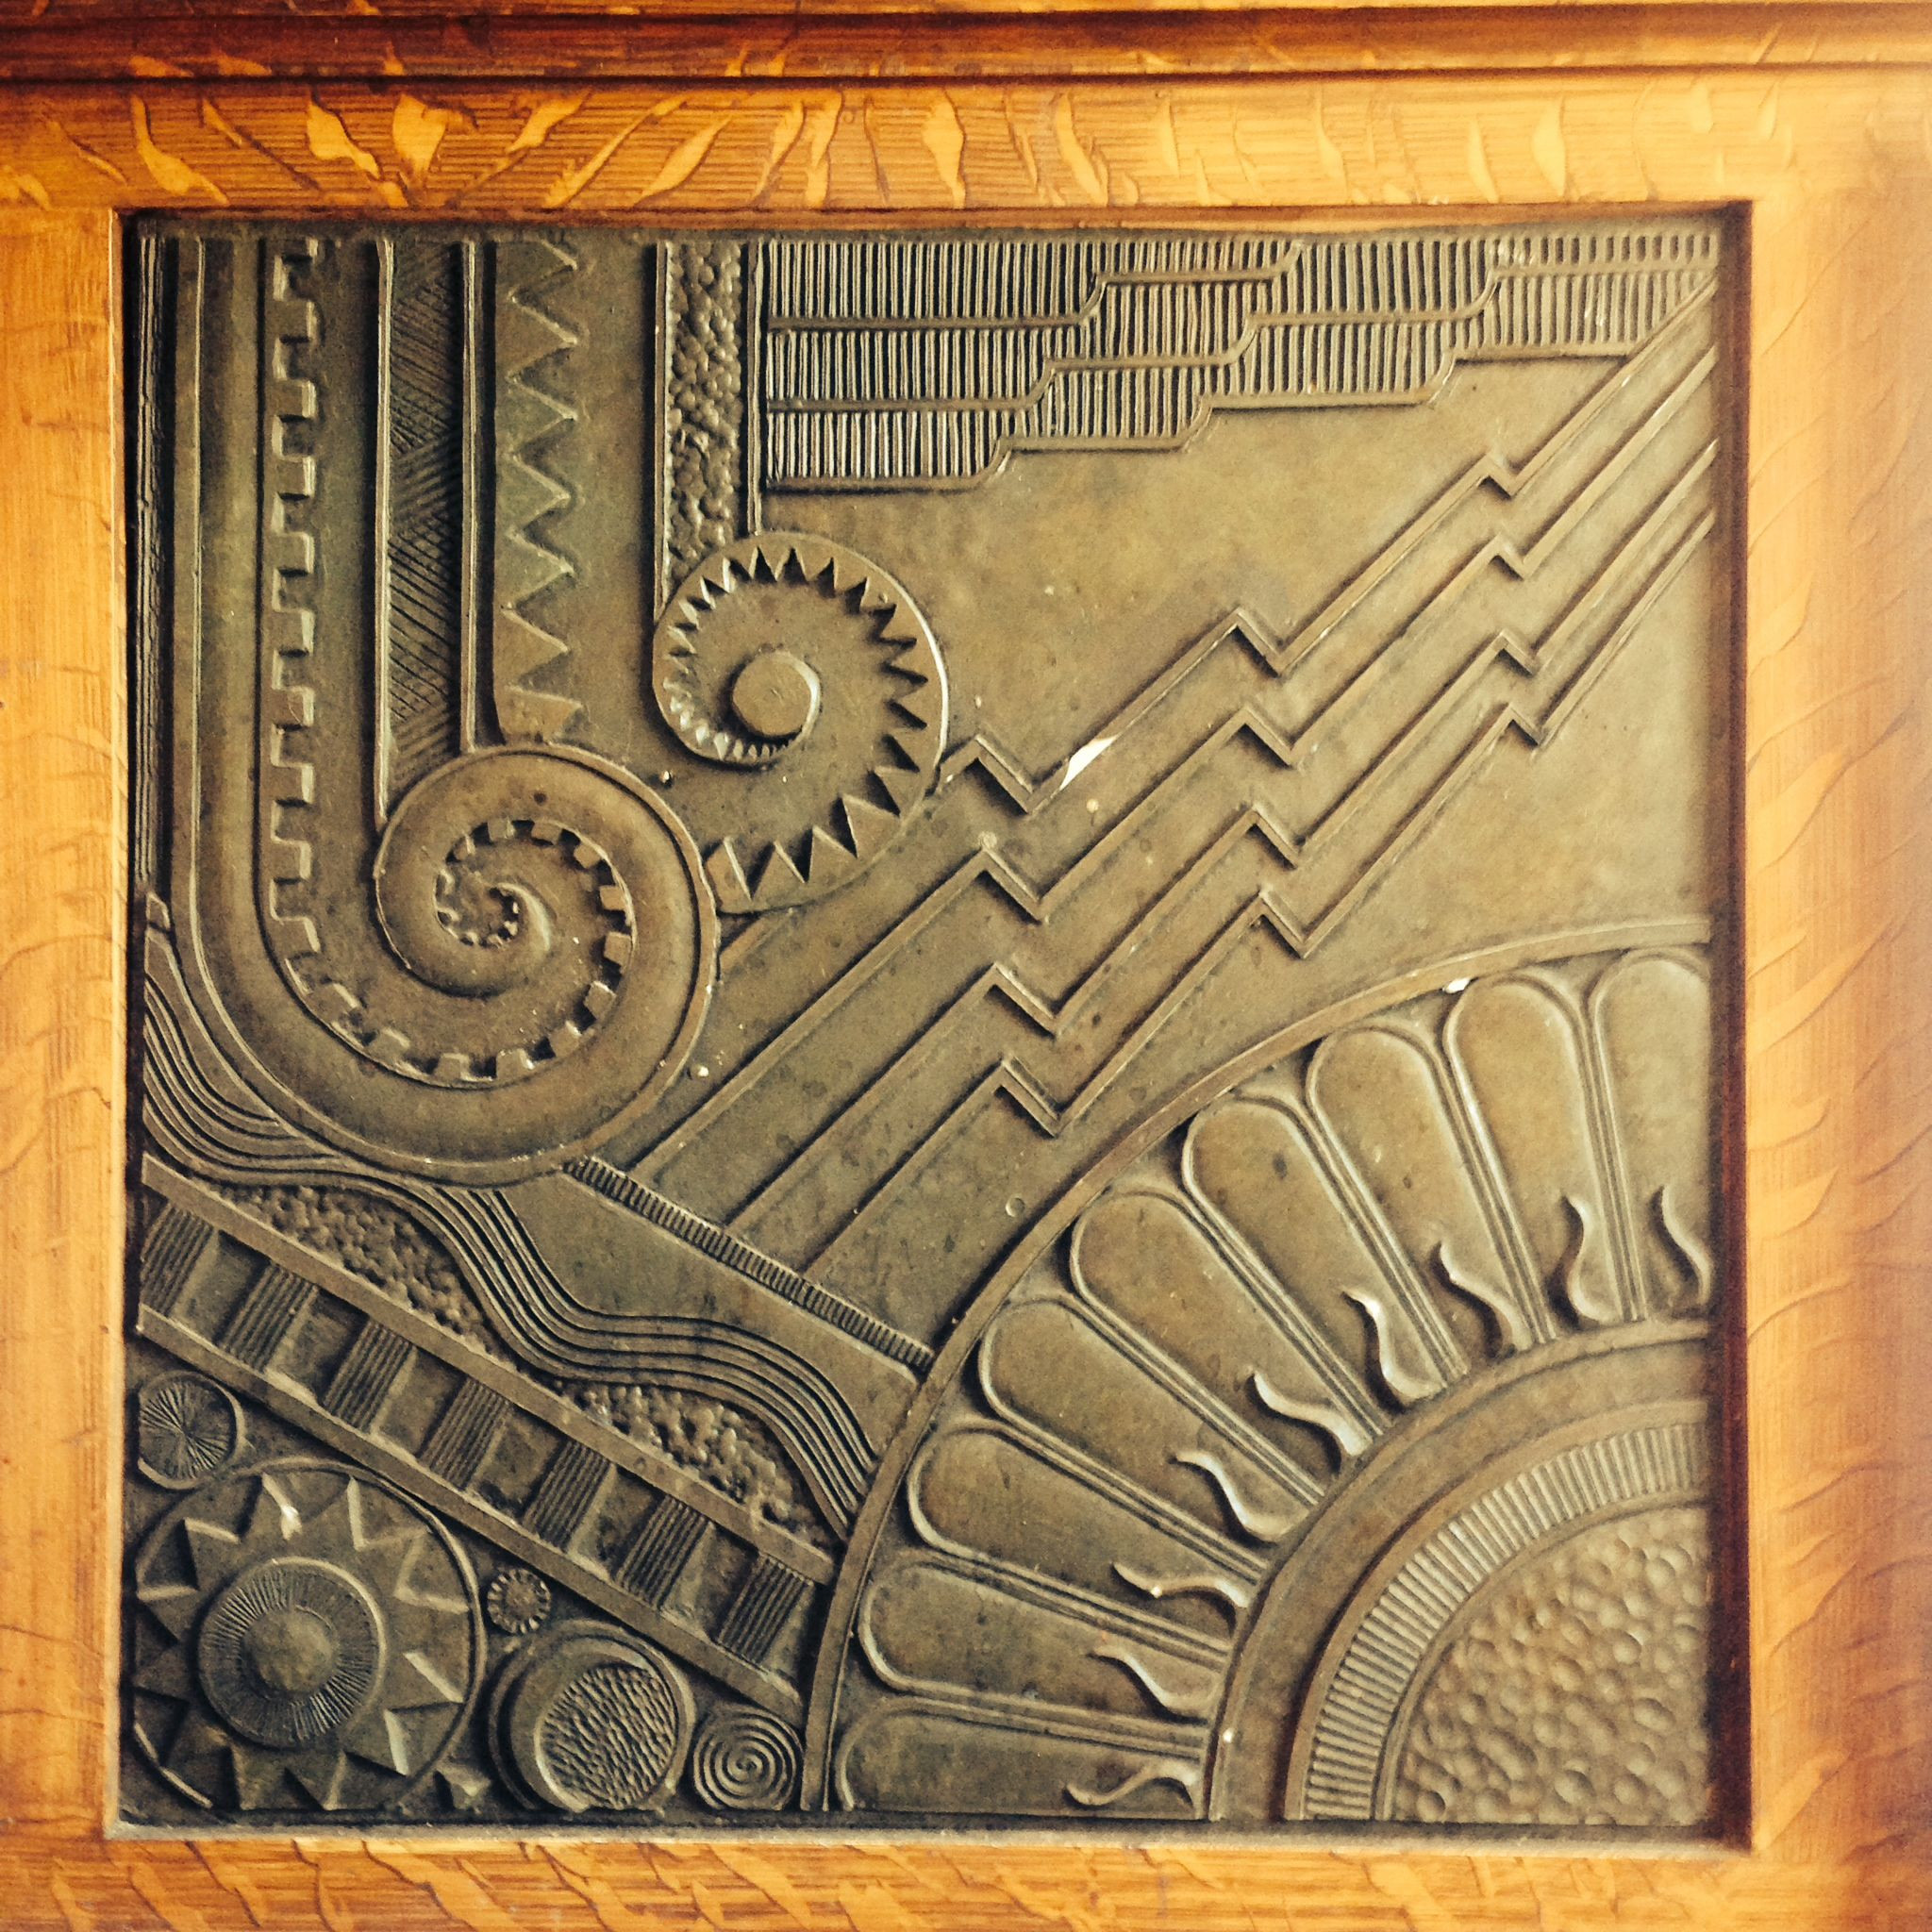 Best ideas about Art Deco Wall Art . Save or Pin Art Deco Wall panel at Cafe Bambino Now.